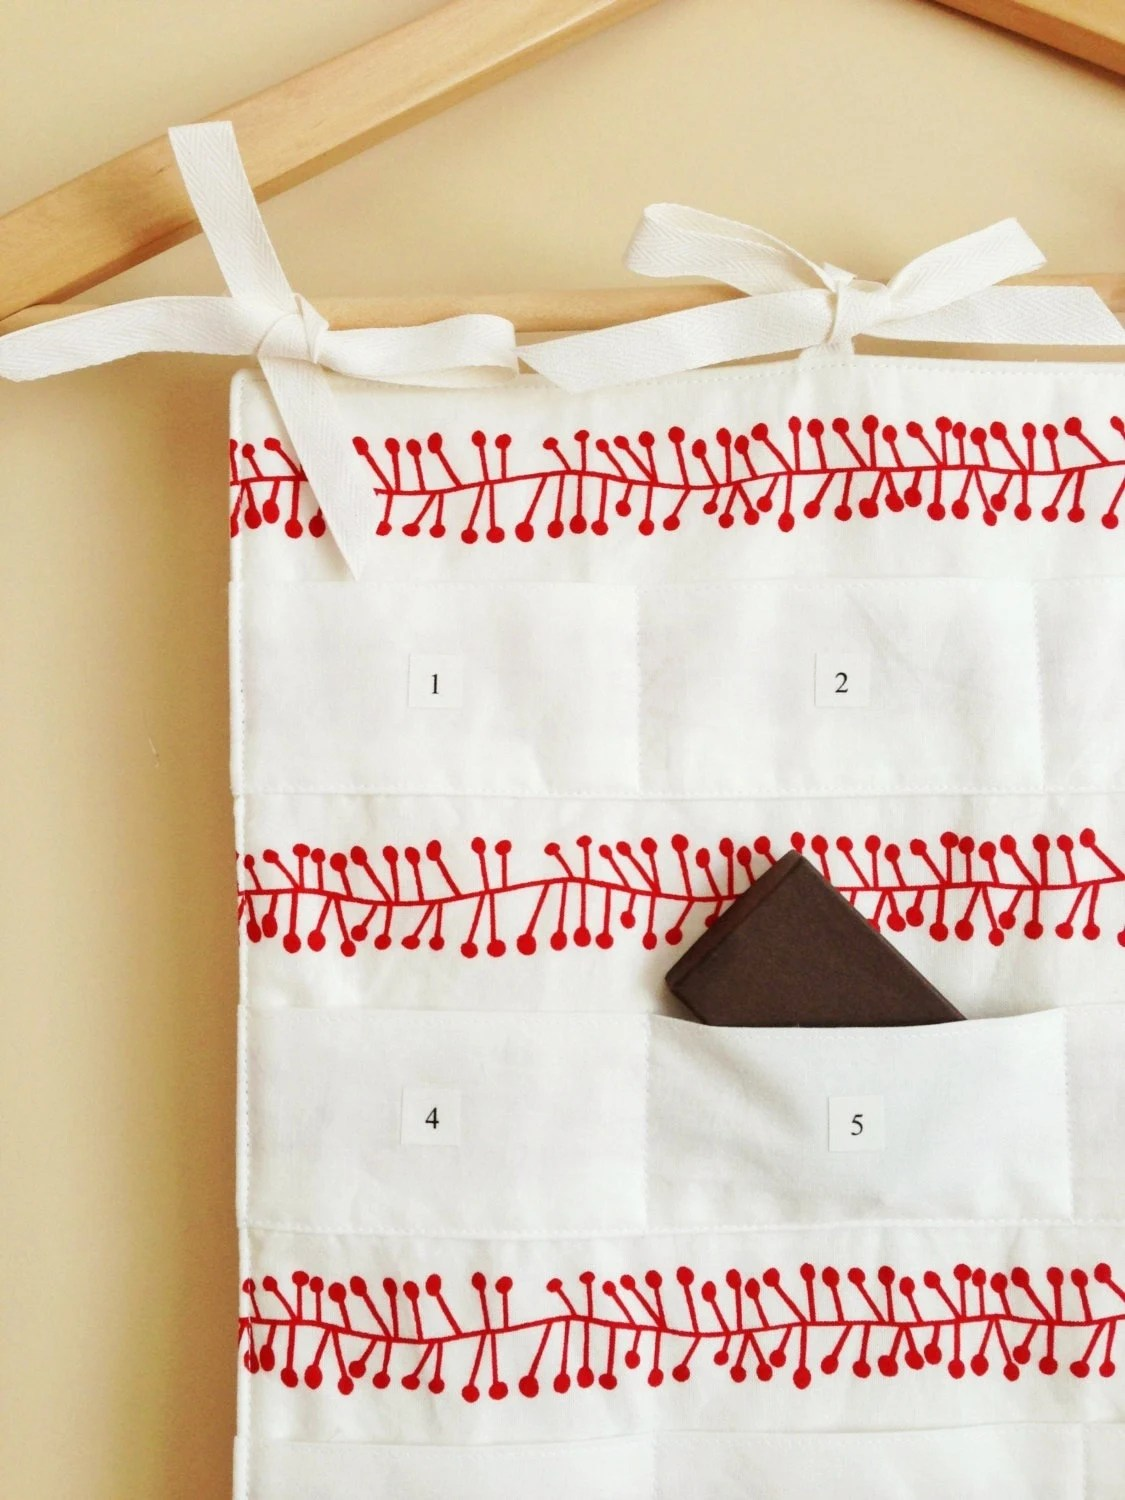 Scandinavian Advent Calendar - Scandi Christmas Countdown Calendar - Red Berries on White - Decoration, Wall Hanging, Xmas Holiday Decor - GoodWishesQuilts